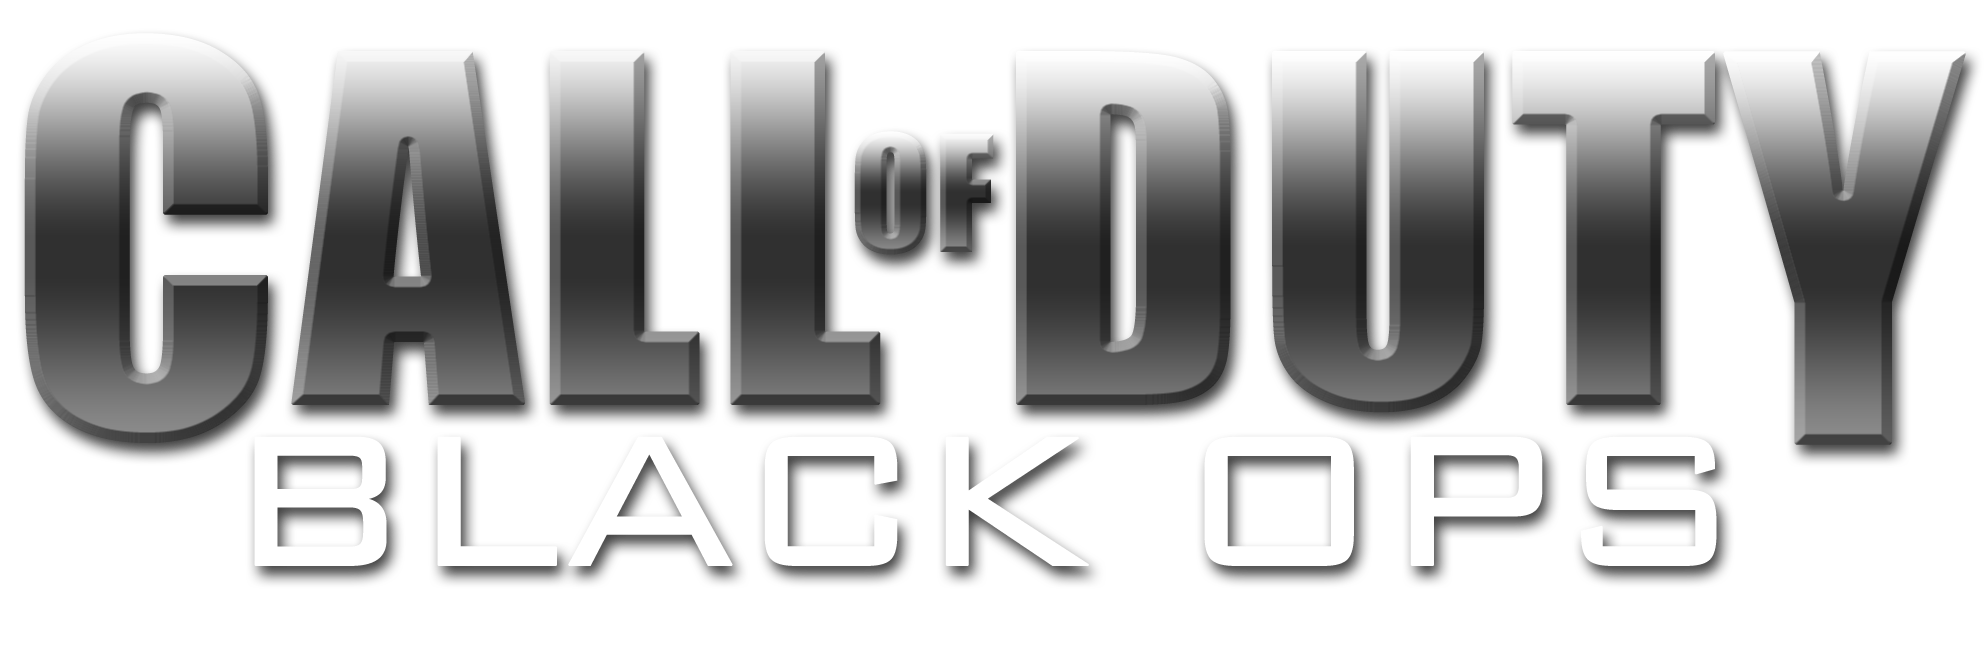 Call Of Duty Black Ops Transparent Image PNG Image